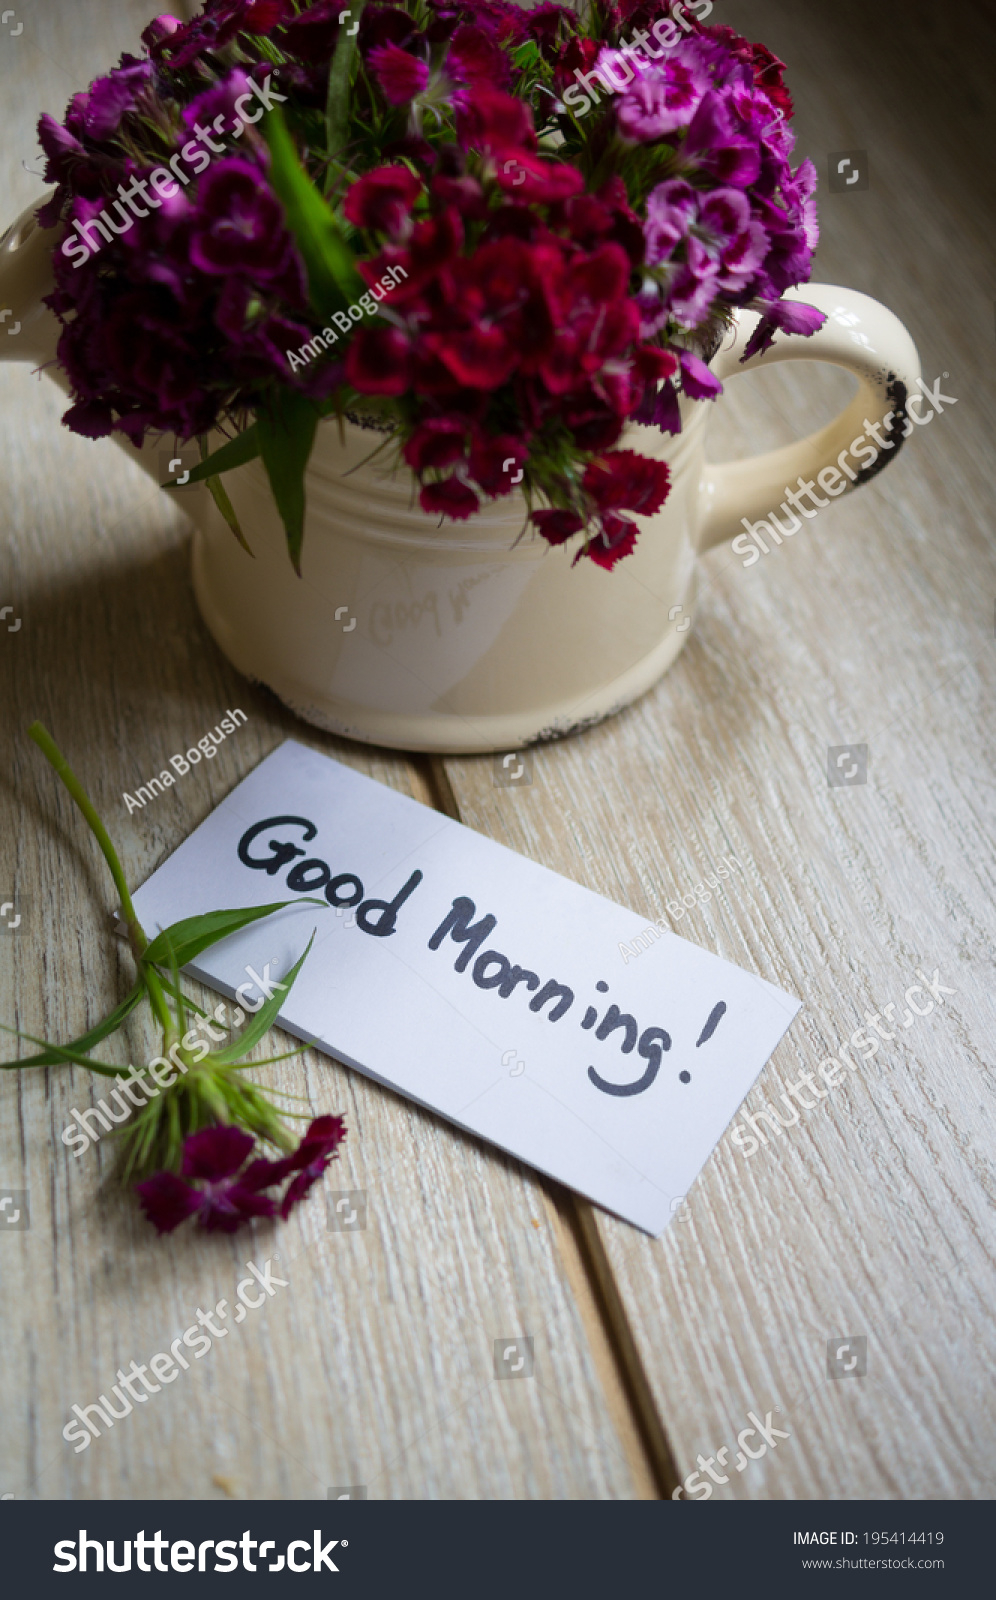 Good Morning Note Flowers Vase Stock Photo Edit Now 195414419 pertaining to dimensions 996 X 1600